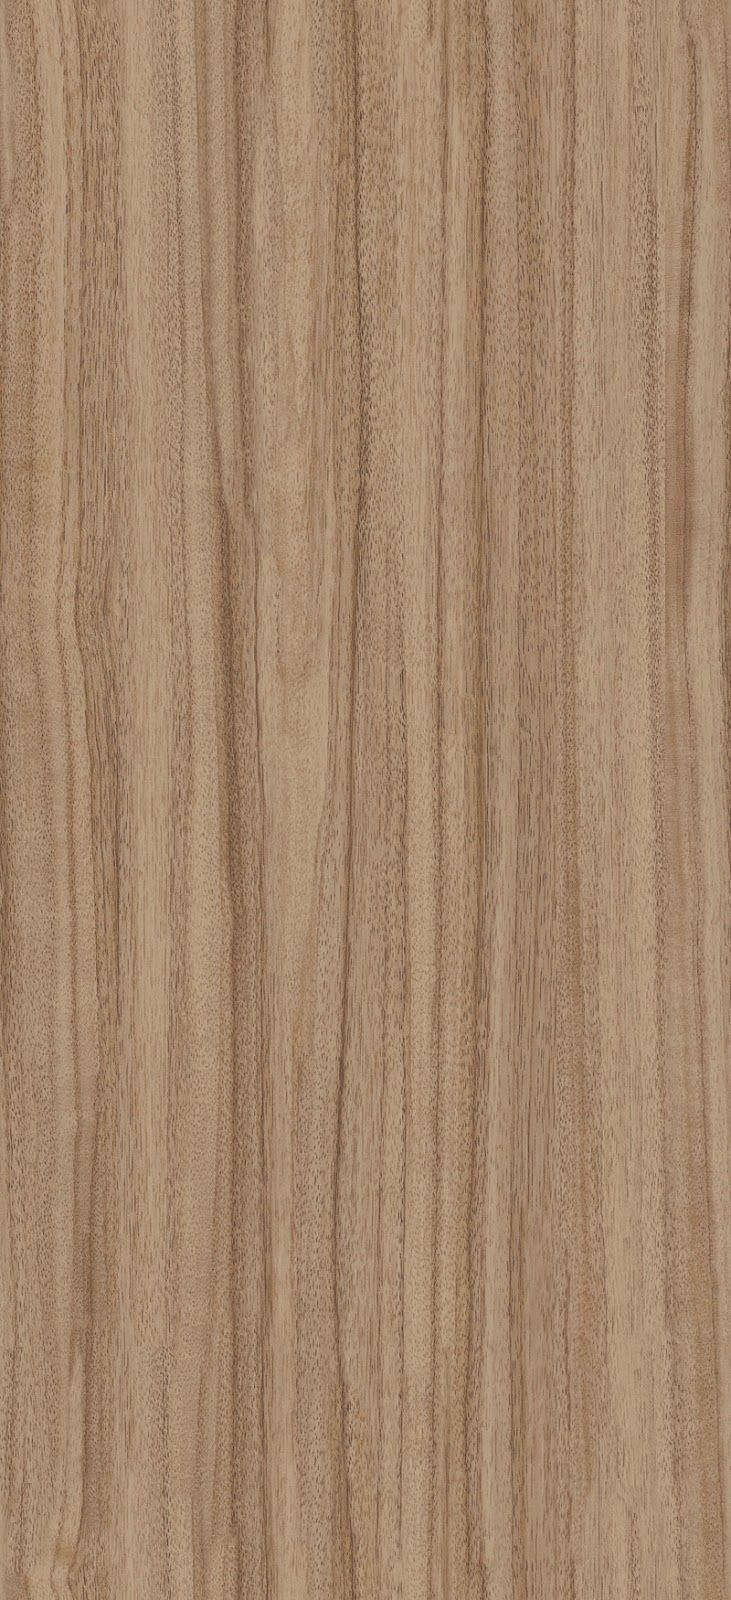 Seamless French Walnut Wood Texture   texturise. 25  best ideas about Wood Texture Seamless on Pinterest   Wood